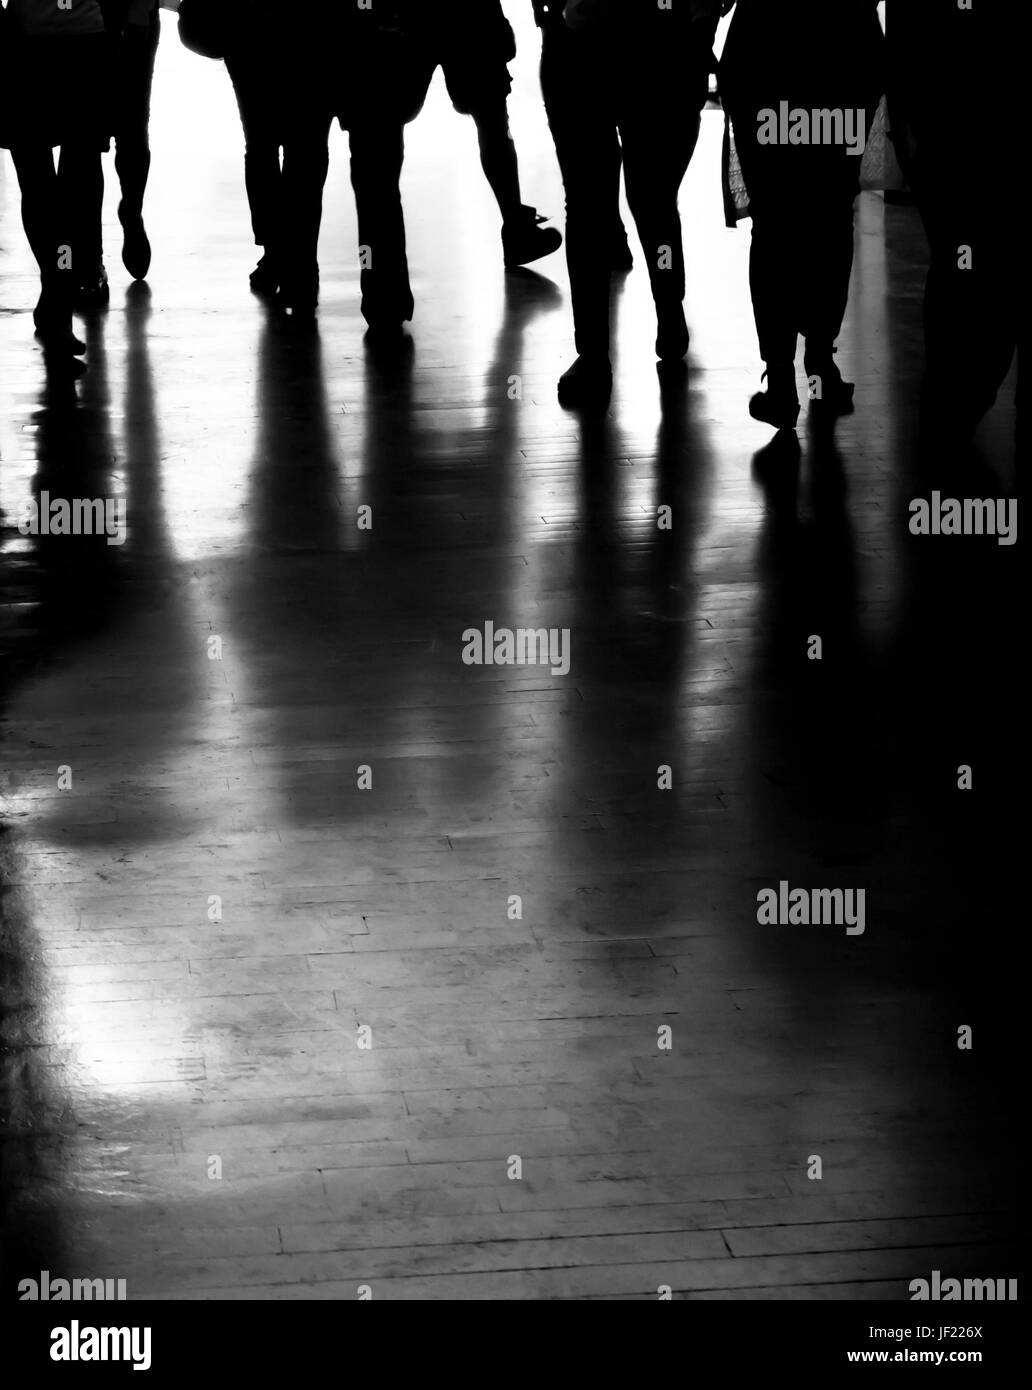 Group of people silhouettes and shadows walking in the dark city passage in black and white - Stock Image